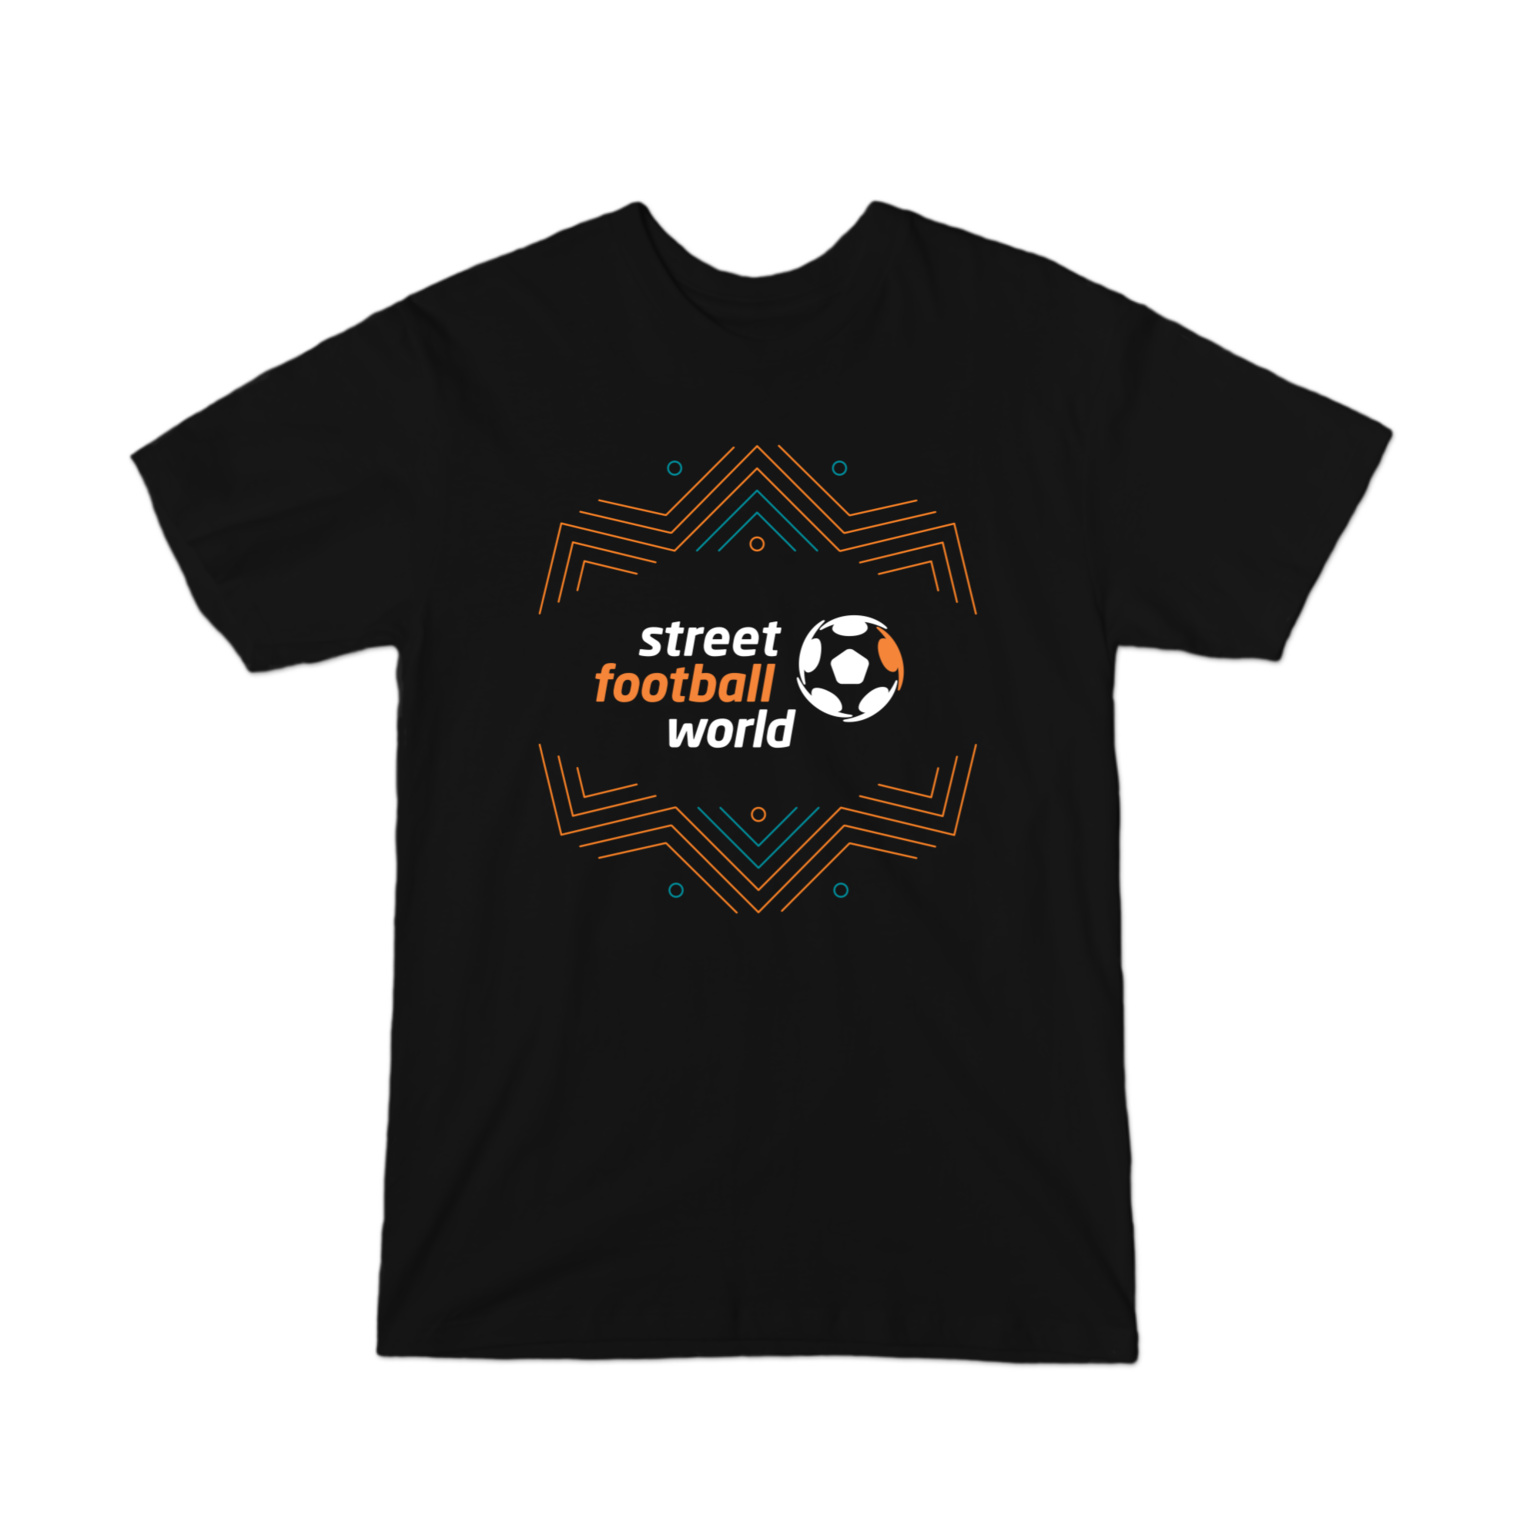 streetfootballworld Youth T-Shirt